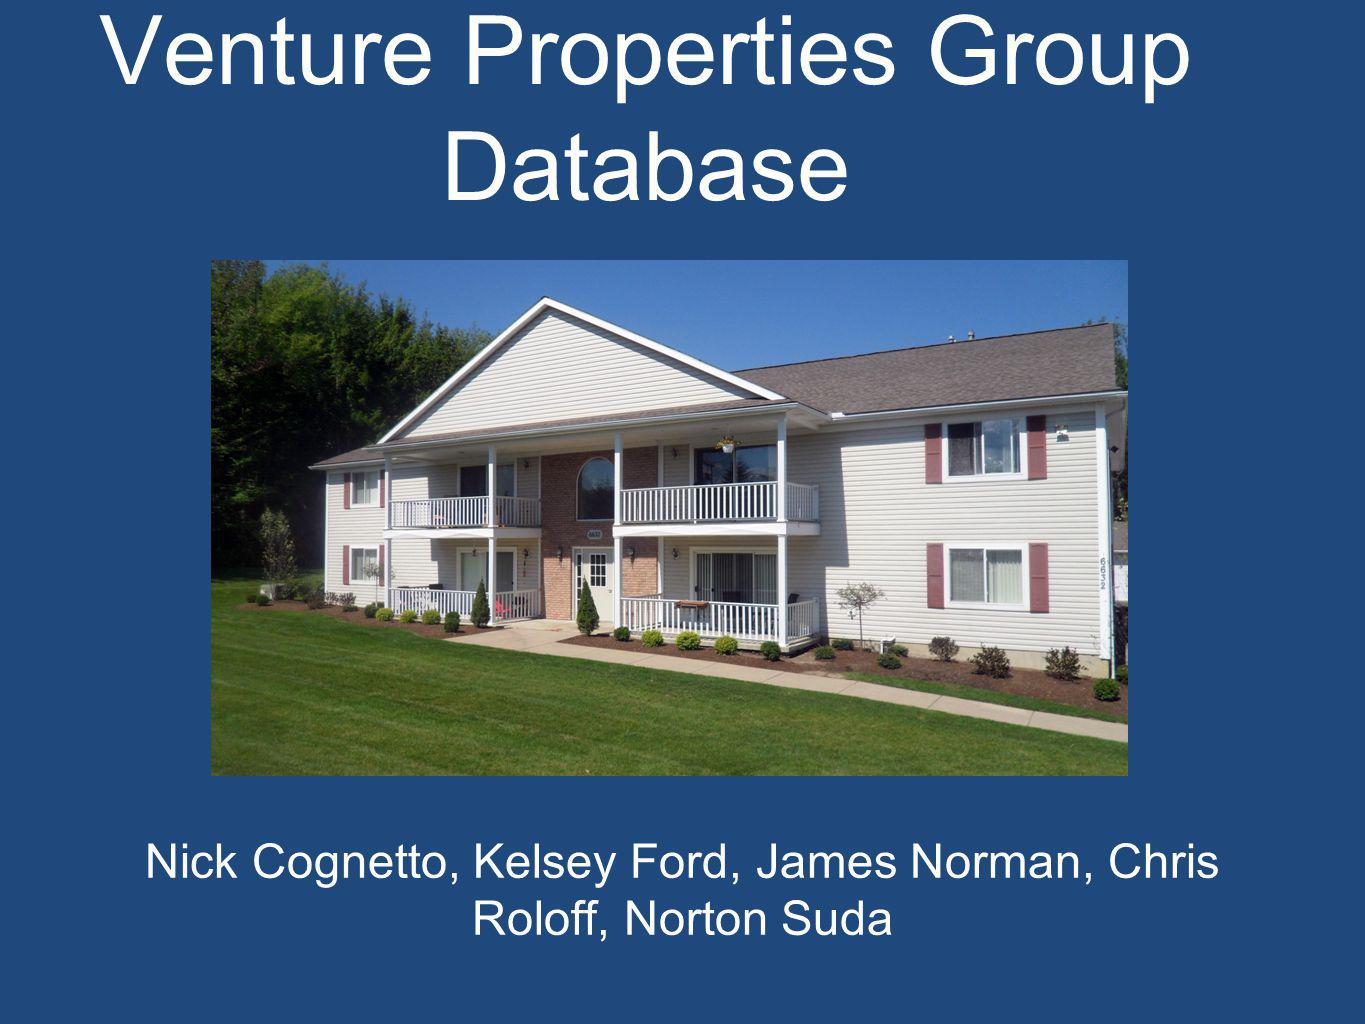 Venture Properties Group Real Estate company based out of West Seneca, NY.